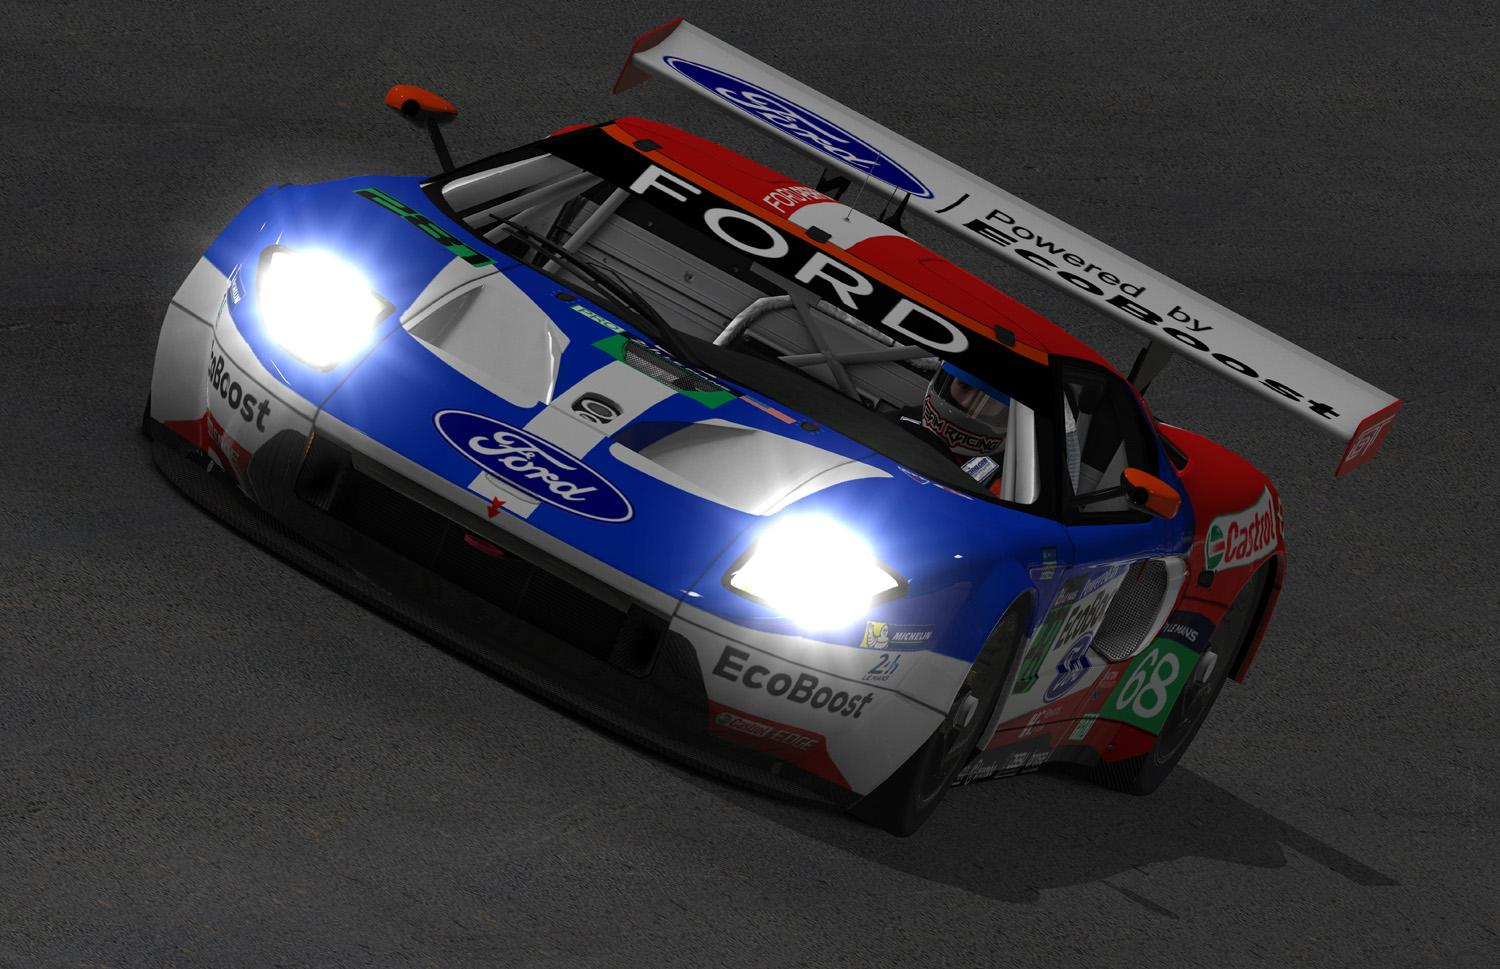 Preview of 2016 #68 24 Hours of Le Mans - GTE Pro class winning Ford GT GT3 by Warren McGary